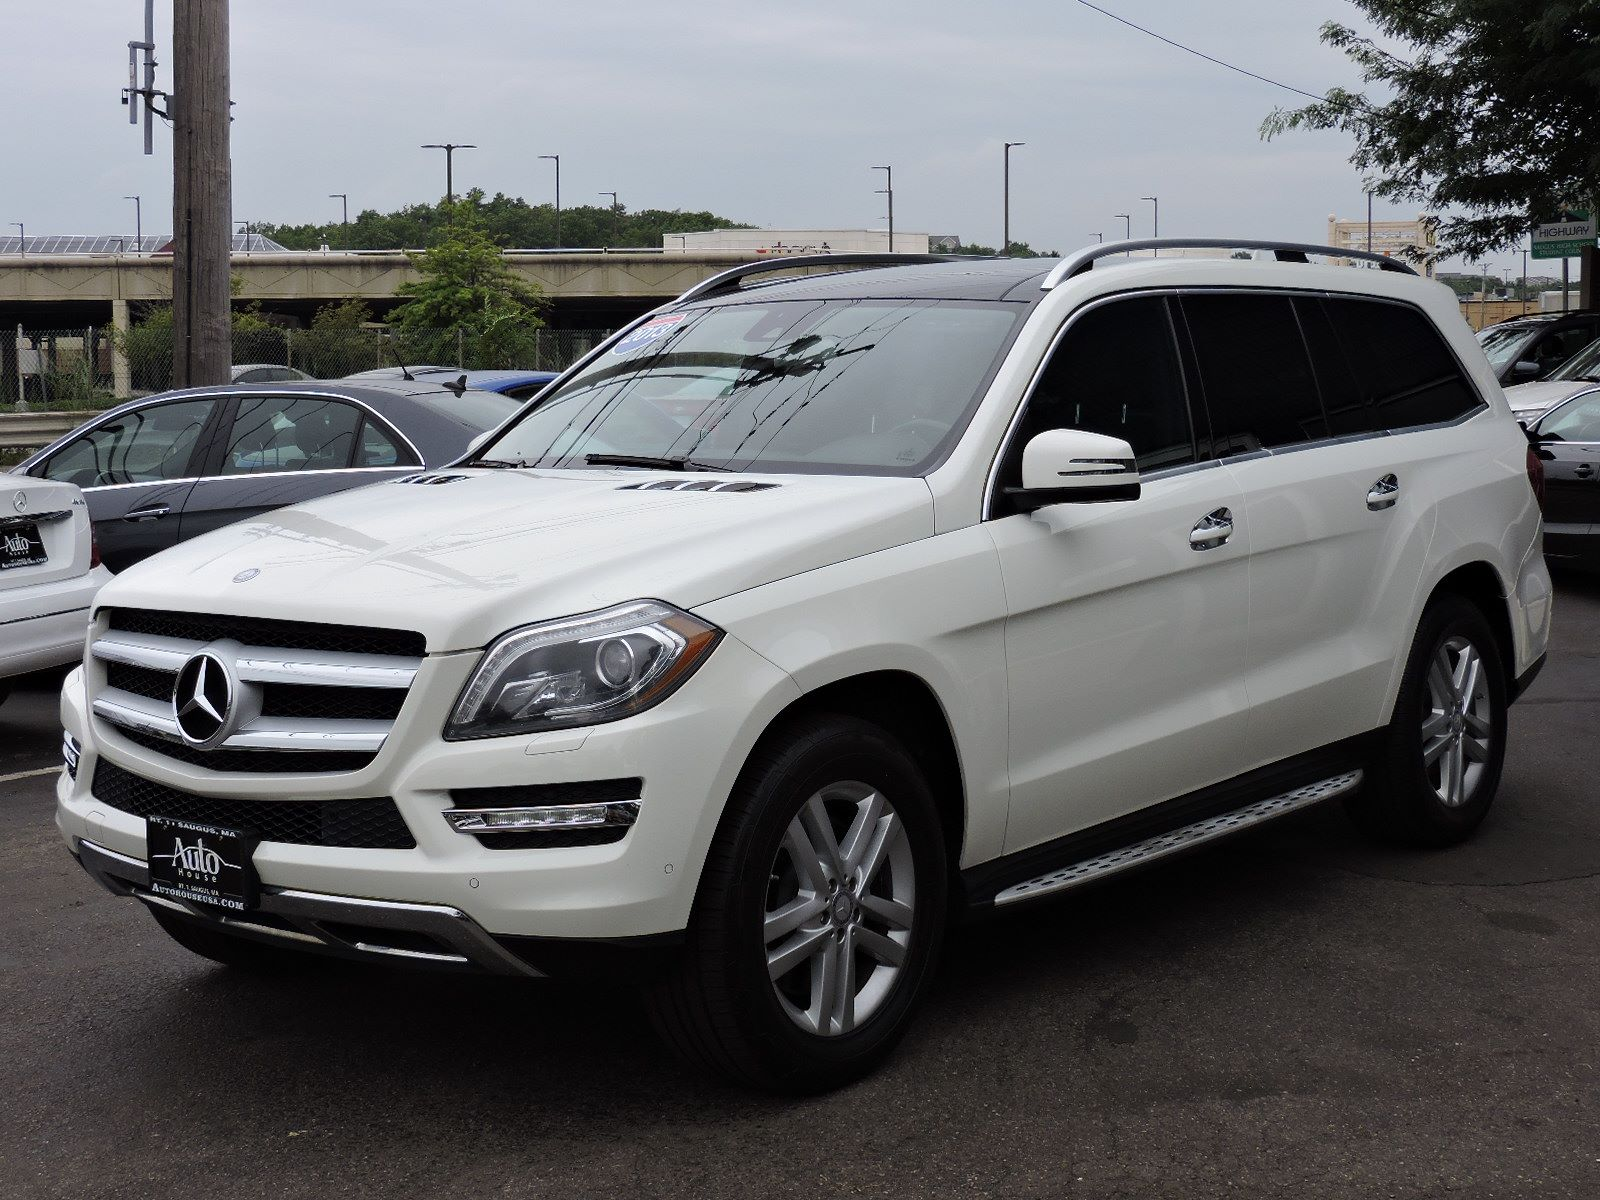 Used 2013 mercedes benz gl450 at auto house usa saugus for 2013 mercedes benz gl450 price